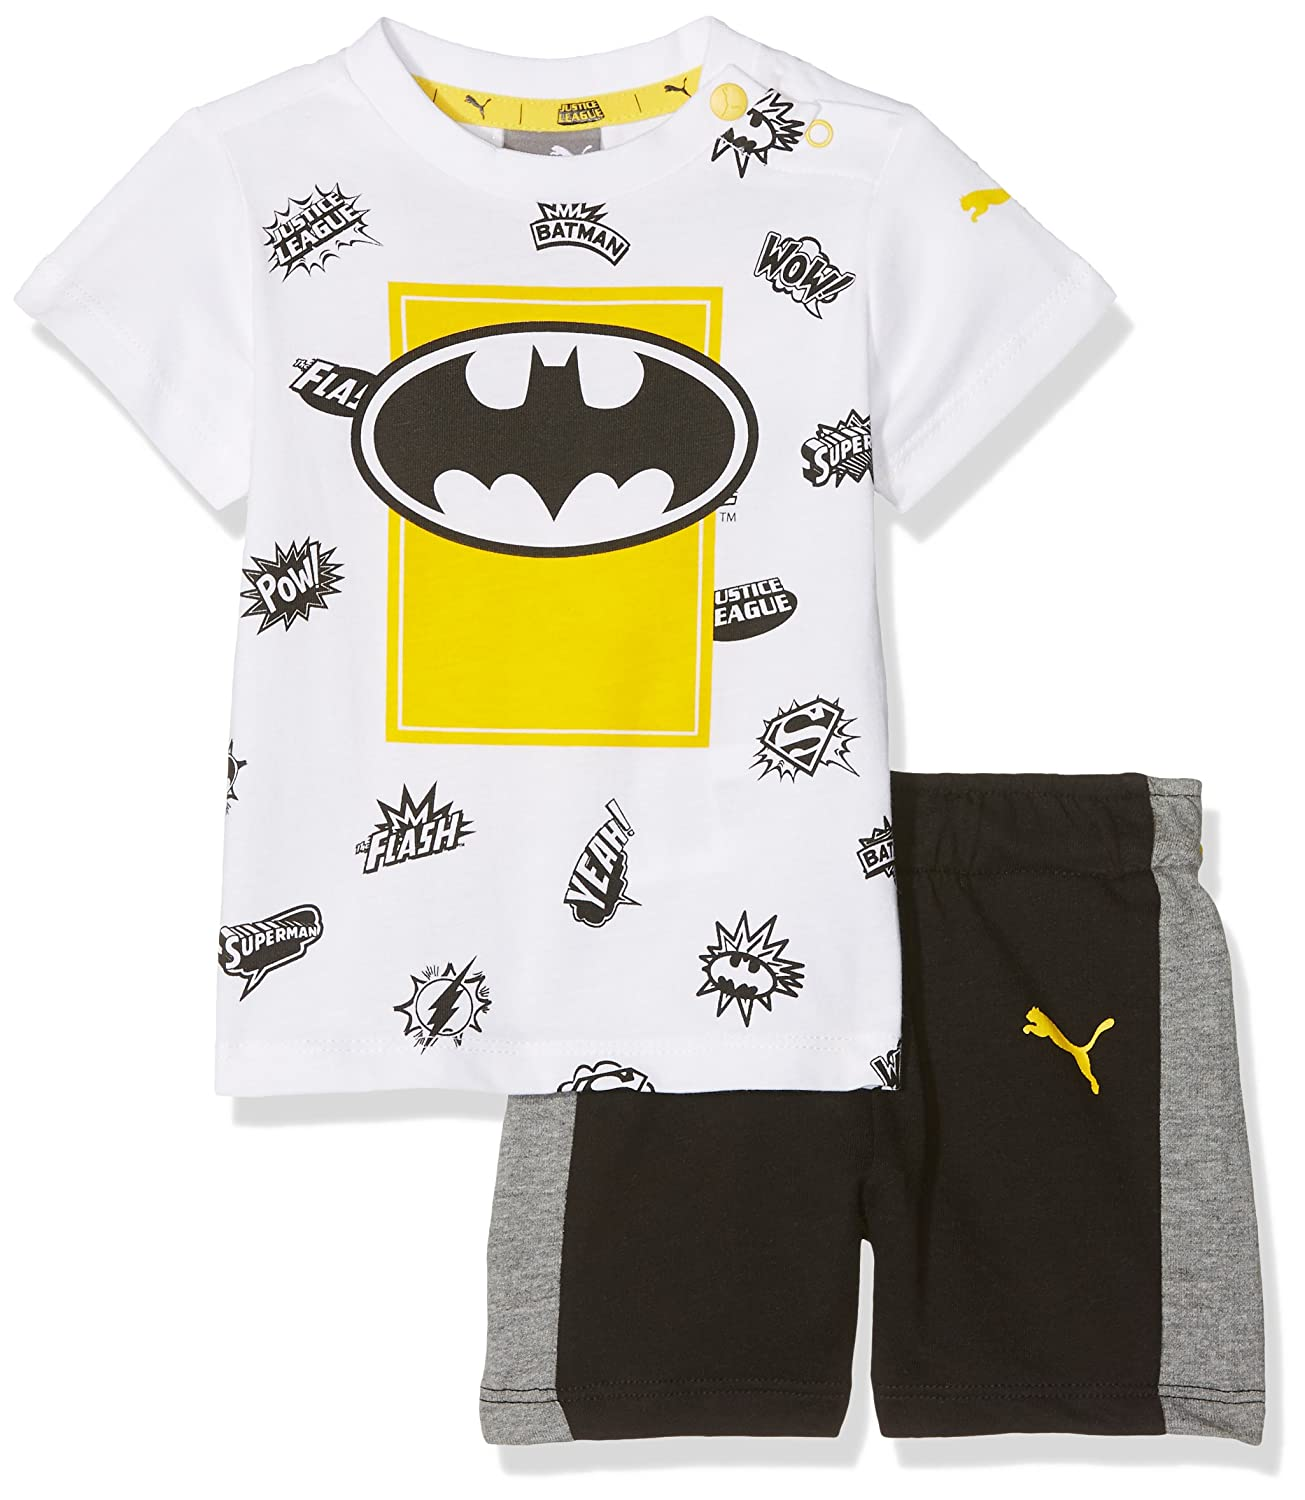 Puma Unisex Baby Justice League Set Packs/Kits PUMAE|#PUMA 850273 02